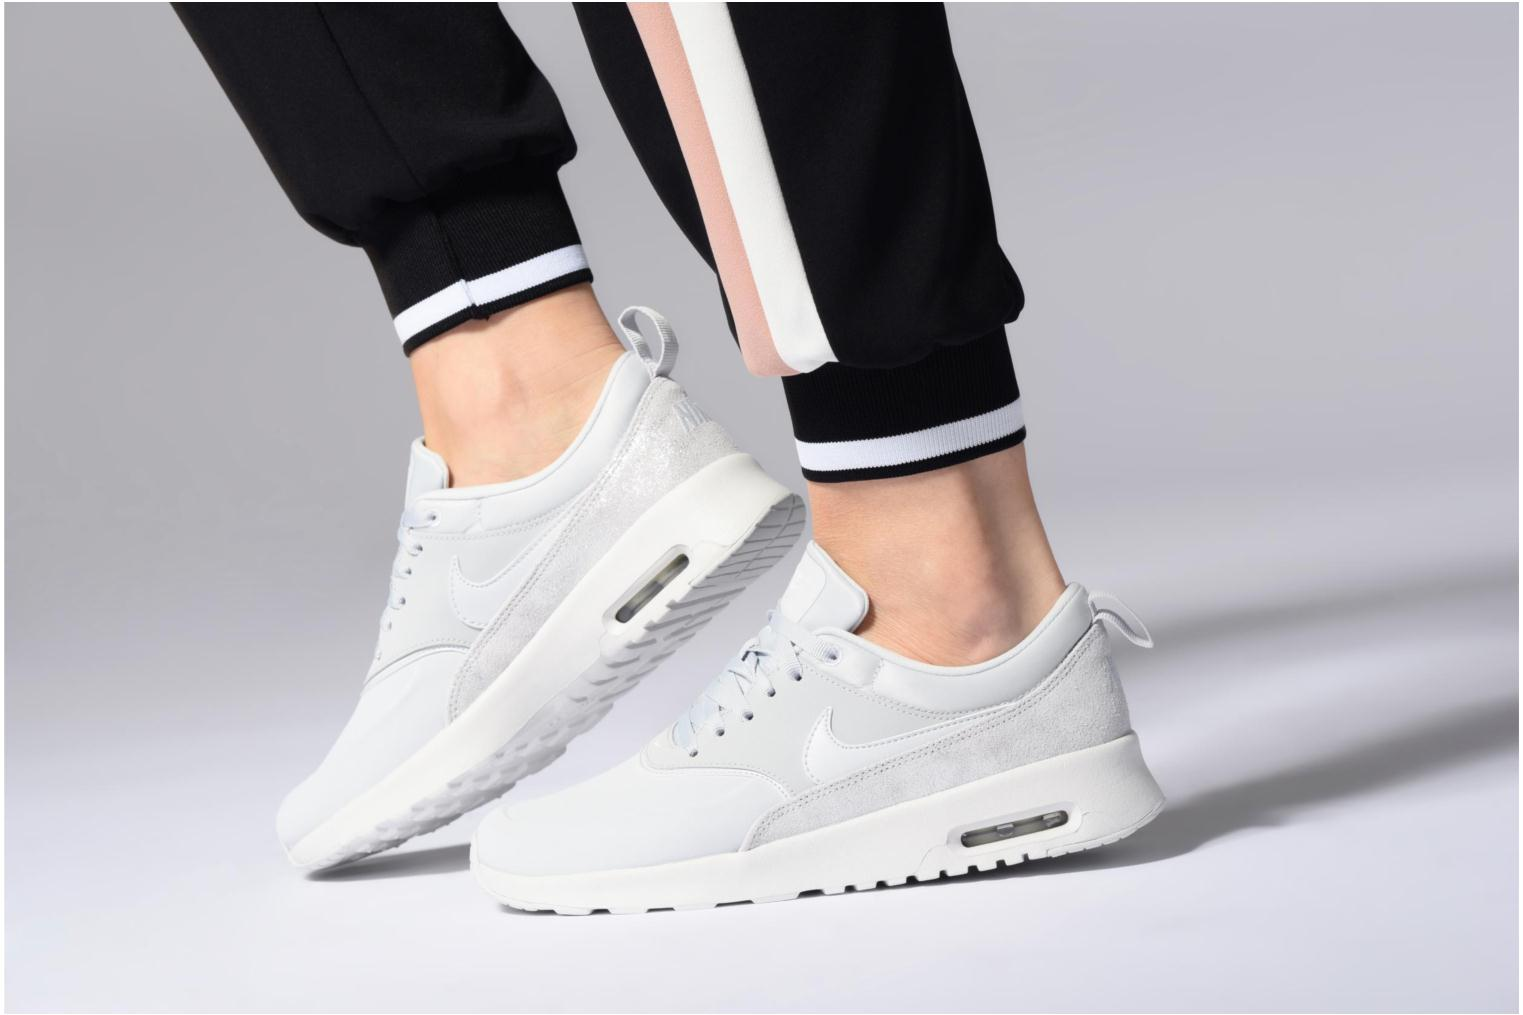 Wmns Nike Air Max Thea Prm Mtlc Field/Mtlc Field-Summit White